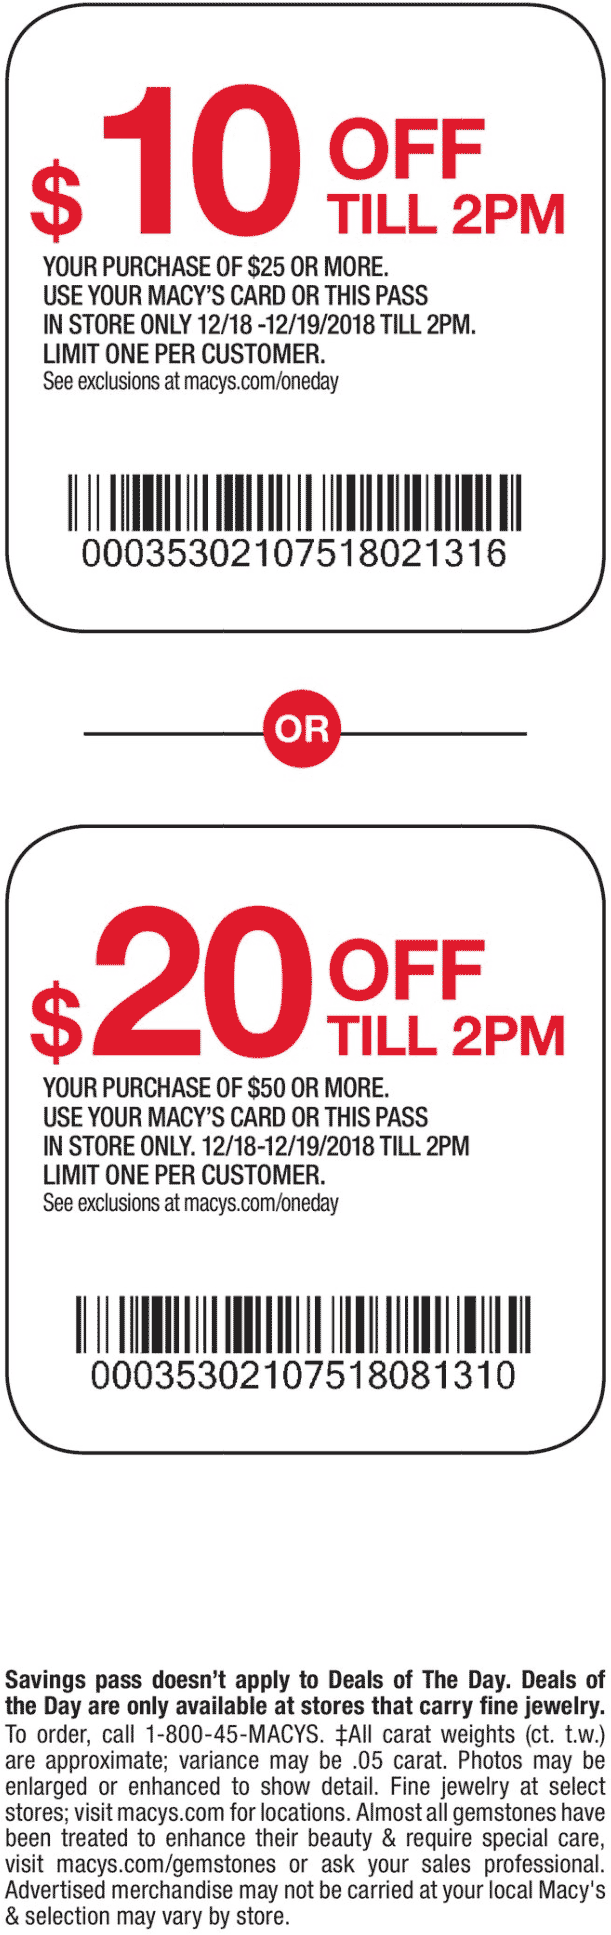 Macys coupons & promo code for [August 2020]